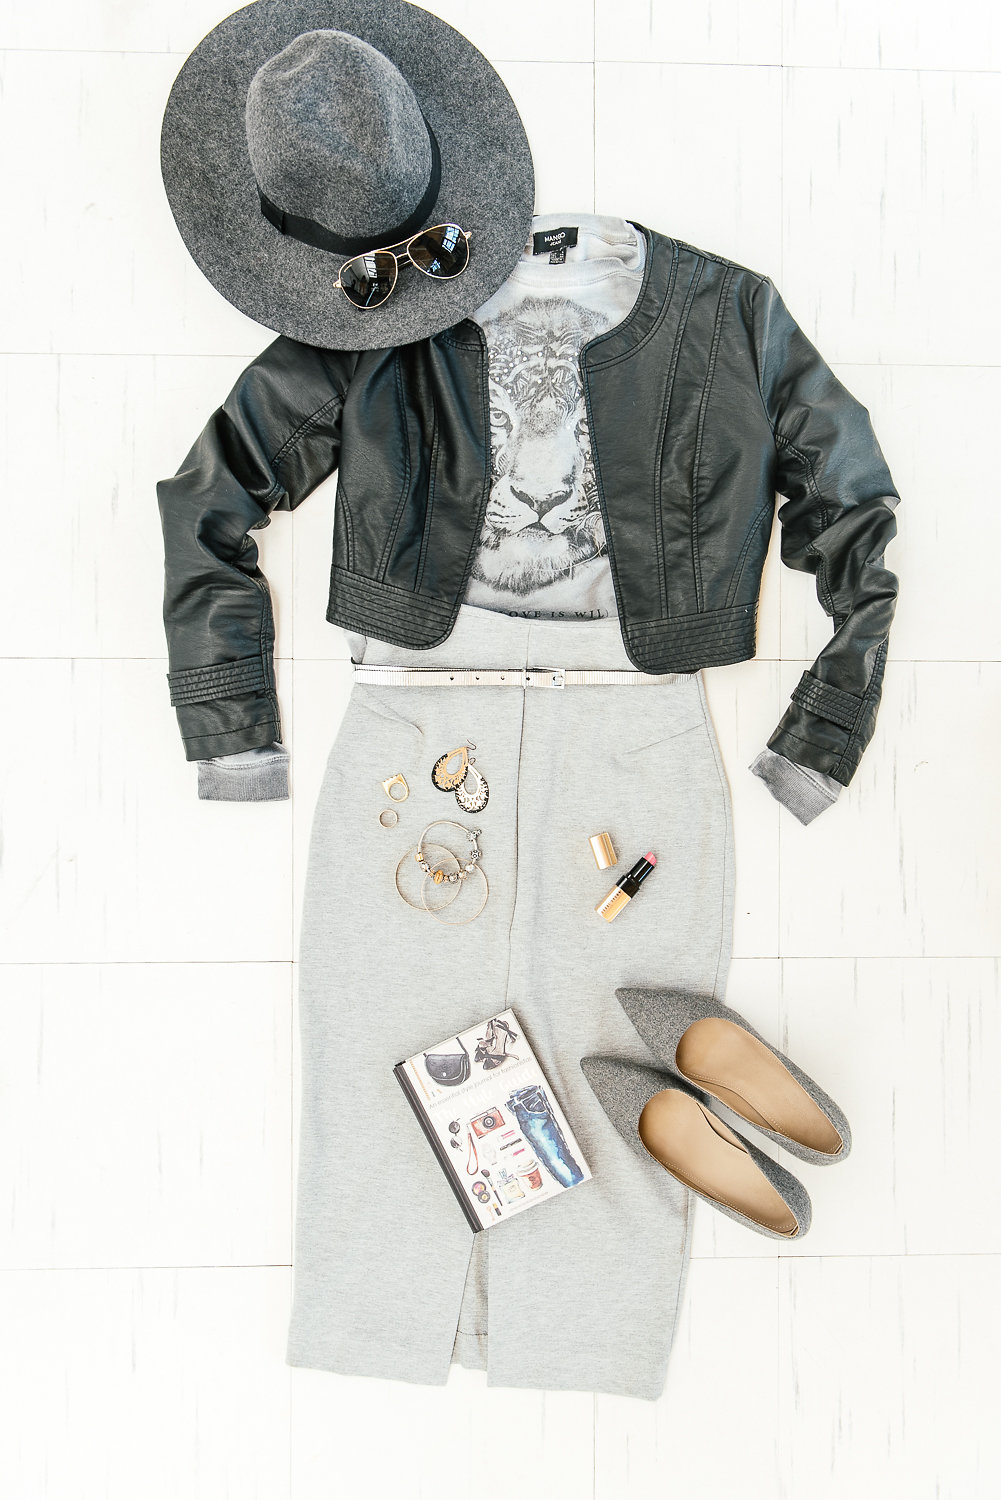 Smartgirl outfit